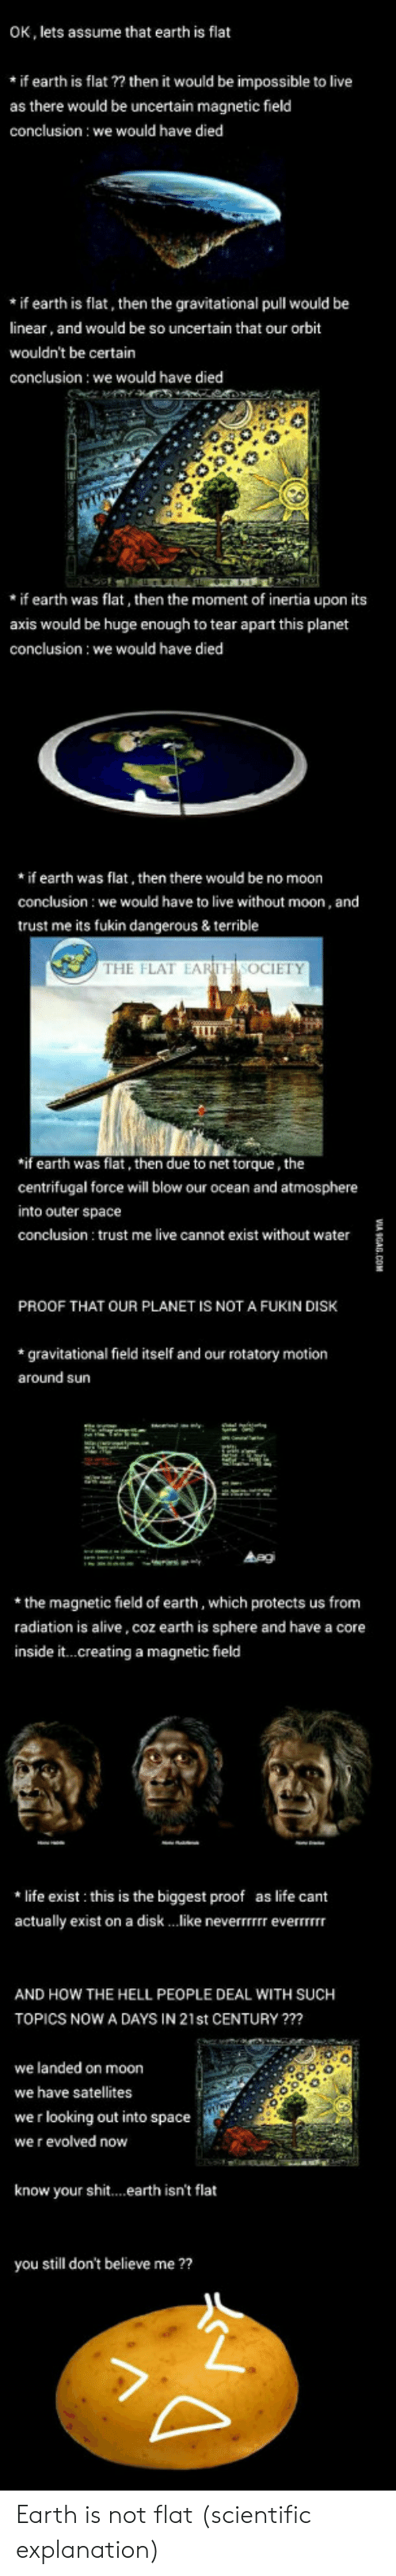 torque: OK, lets assume that earth is flat  *if earth is flat ?? then it would be impossible to live  as there would be uncertain magnetic field  conclusion we would have died  *if earth is flat, then the gravitational pull would be  linear, and would be so uncertain that our orbit  wouldn't be certain  conclusion: we would have died  * if earth was flat, then the moment of inertia upon its  axis would be huge enough to tear apart this planet  conclusion we would have died  *if earth was flat, then there would be no moon  conclusion: we would have to live without moon, and  trust me its ukin dangerous & terrible  THE FLAT EARTH SOCIETY  if earth was flat, then due to net torque, the  centrifugal force will blow our ocean and atmosphere  into outer space  conclusion trust me live cannot exist without water  PROOF THAT OUR PLANET IS NOT A FUKIN DISK  *gravitational field itself and our rotatory motion  around sun  *the magnetic field of earth, which protects us from  radiation is alive, coz earth is sphere and have a core  inside it...creating a magnetic field  * life exist this is the biggest proof as life cant  actually exist on a disk like neverrrrrr everTTrrr  AND HOW THE HELL PEOPLE DEAL WITH SUCH  TOPICS NOW A DAYS IN 21st CENTURY ??  we landed on moon  we have satellites  we r looking out into space  we r evolved novw  know your shit... earth isn't flat  you still don't believe me ?? Earth is not flat (scientific explanation)